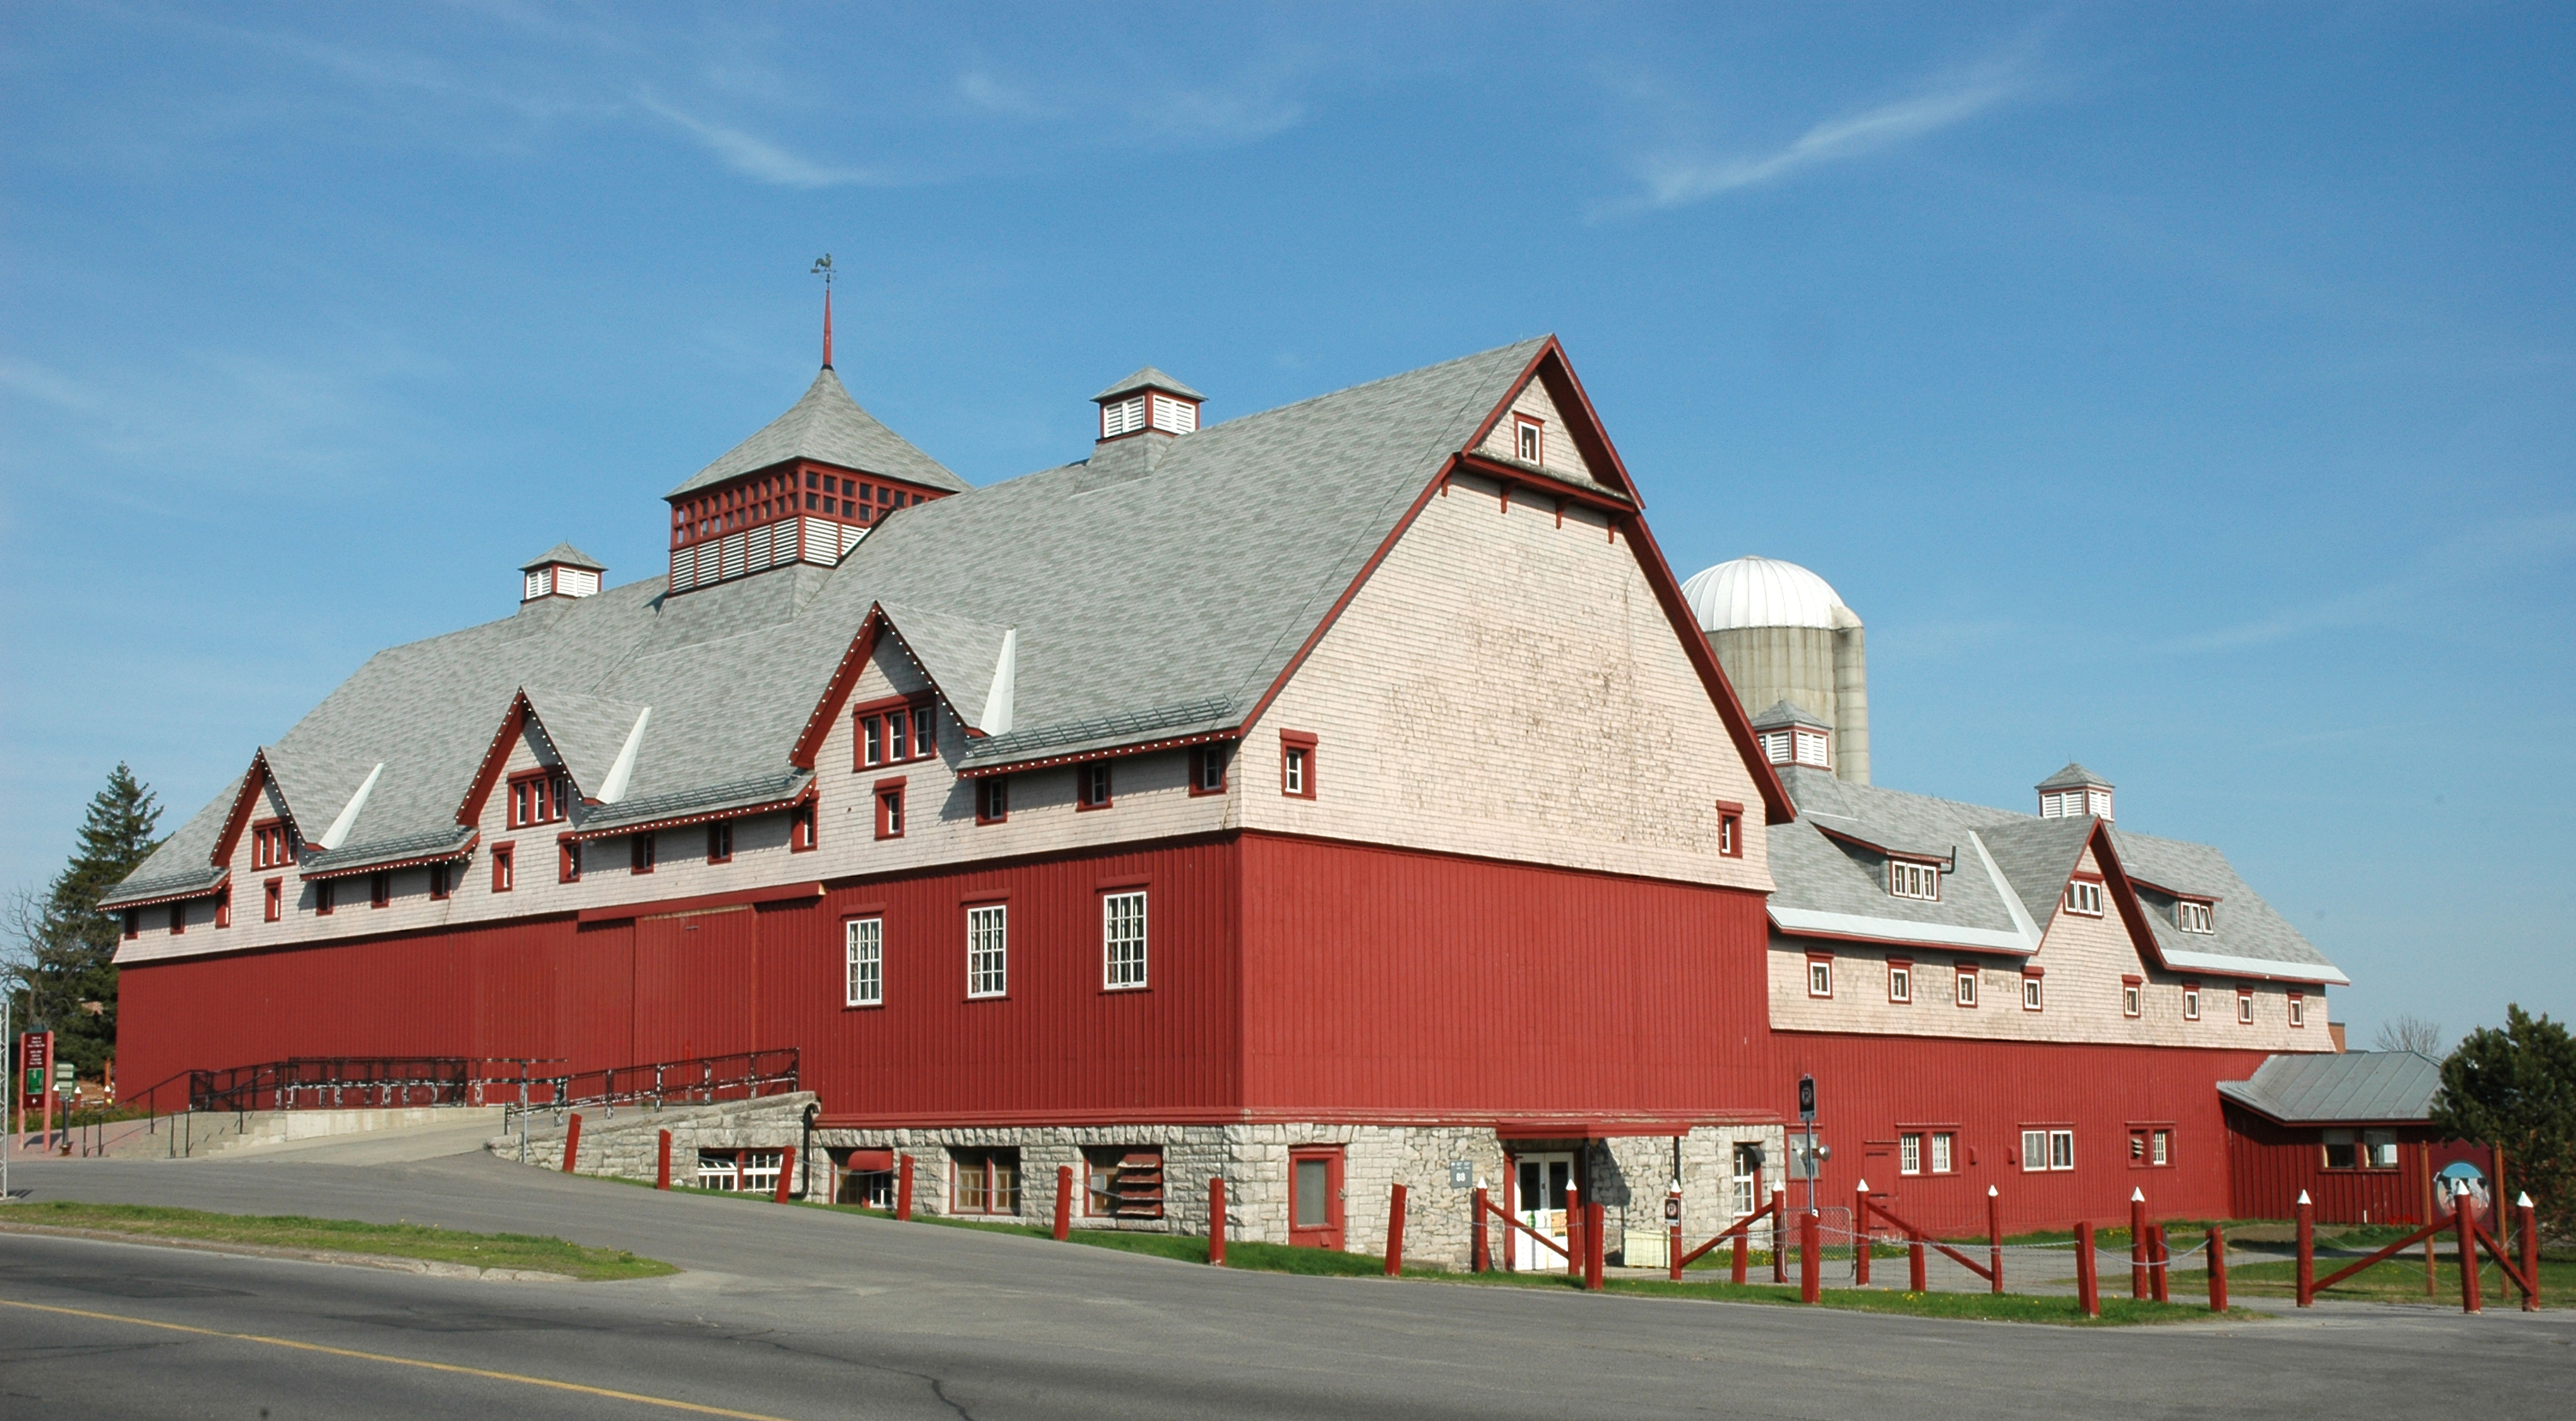 Barn Building 88 at the Canada Agriculture and Food Museum